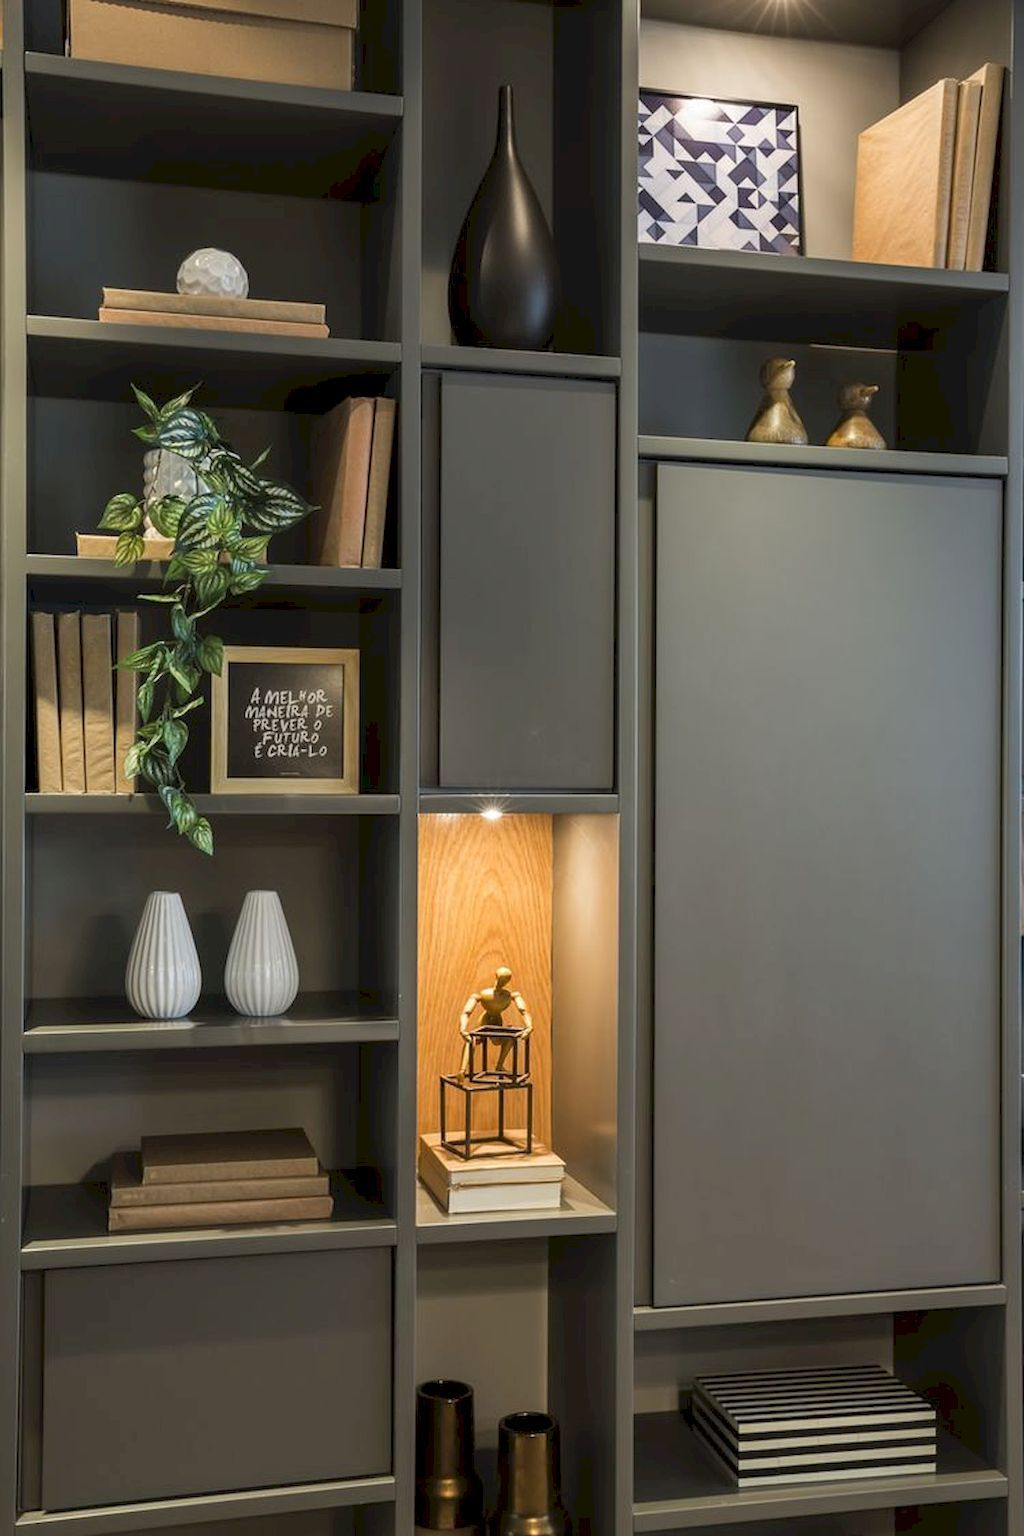 Ikea Home Office Library Ideas: Top 10 Stunning Home Office Design